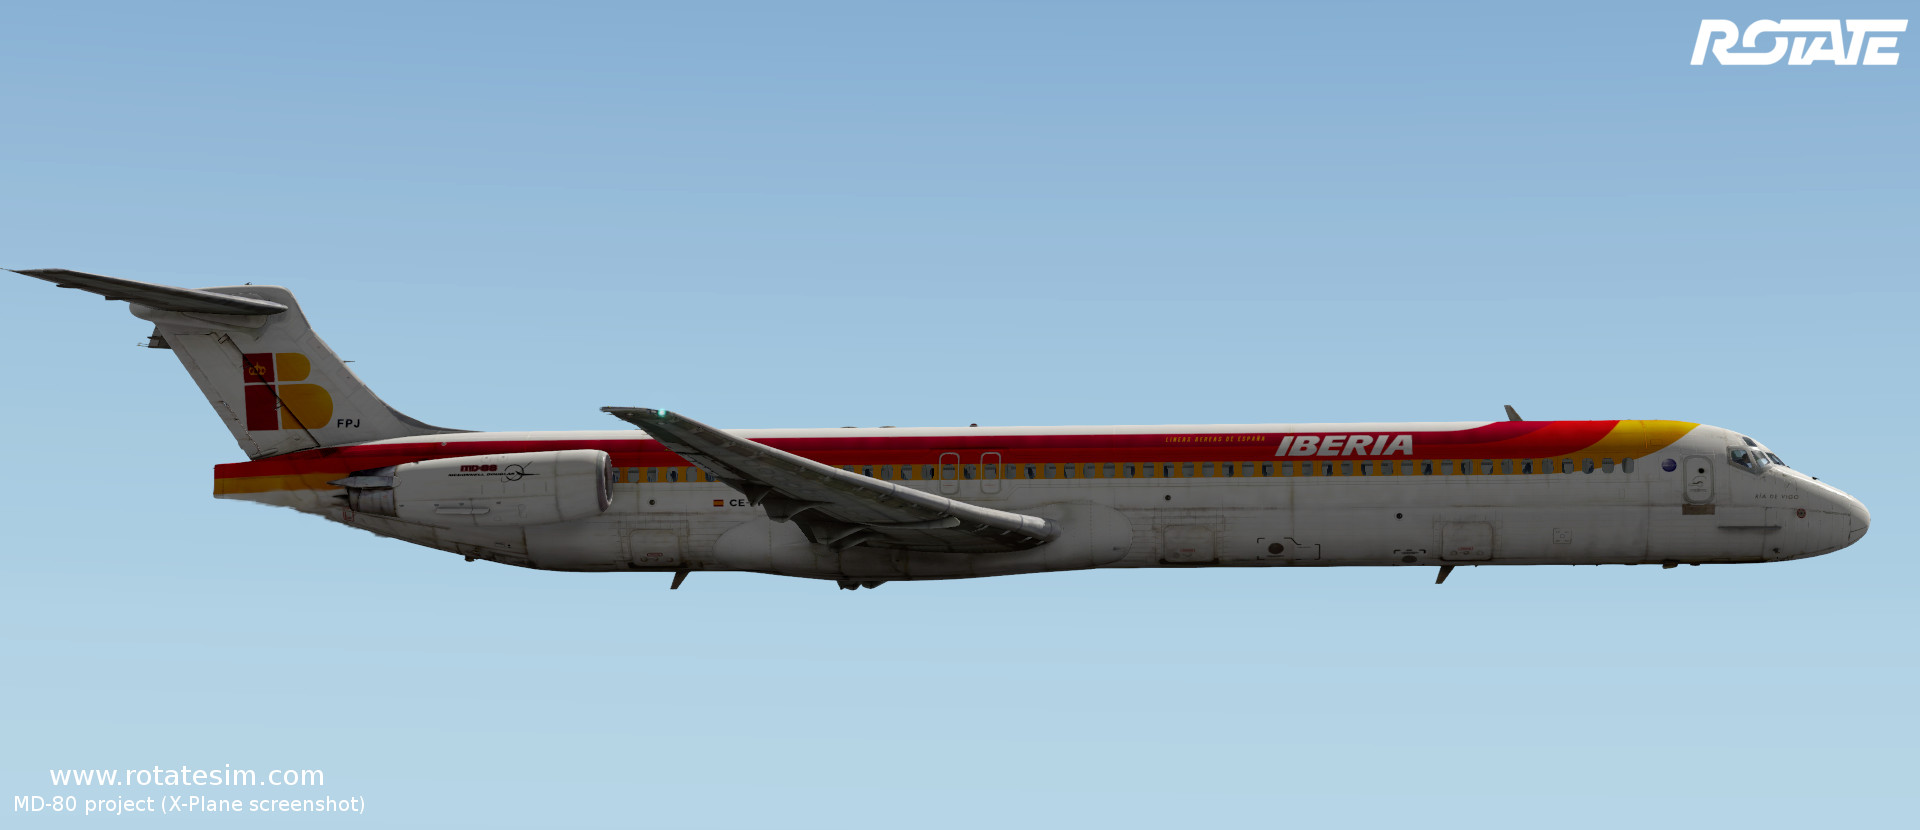 MD-80 liveries - Iberia